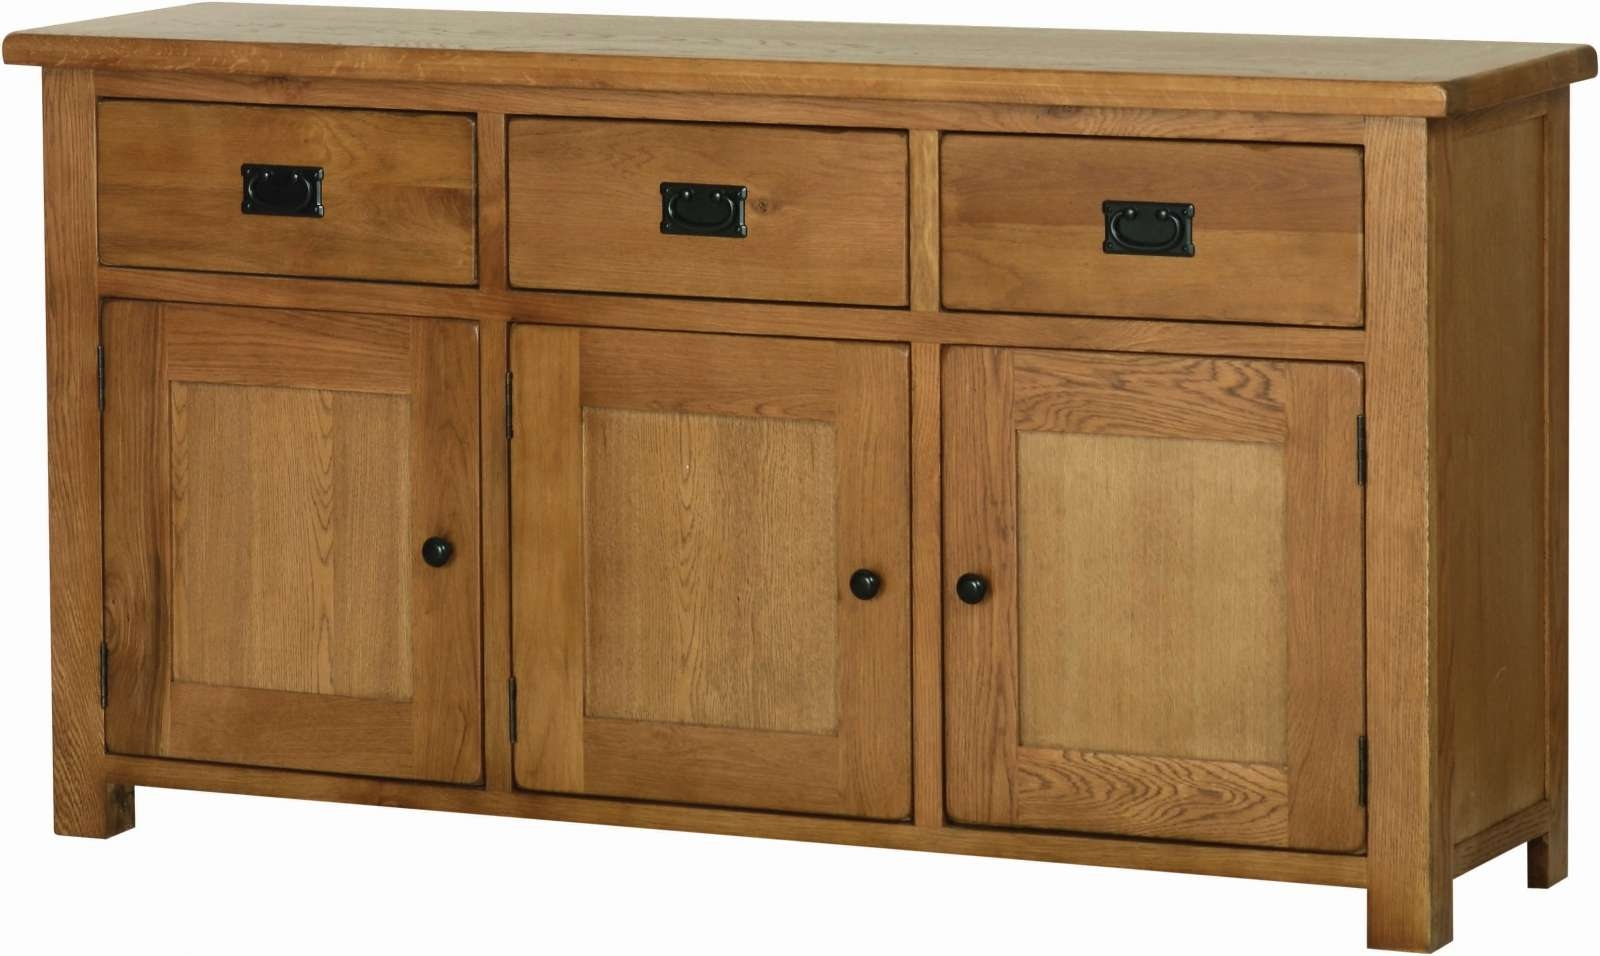 Oak Large Sideboard – Solid Wood & Painted Made To Measure Intended For Rustic Oak Large Sideboards (Gallery 16 of 20)